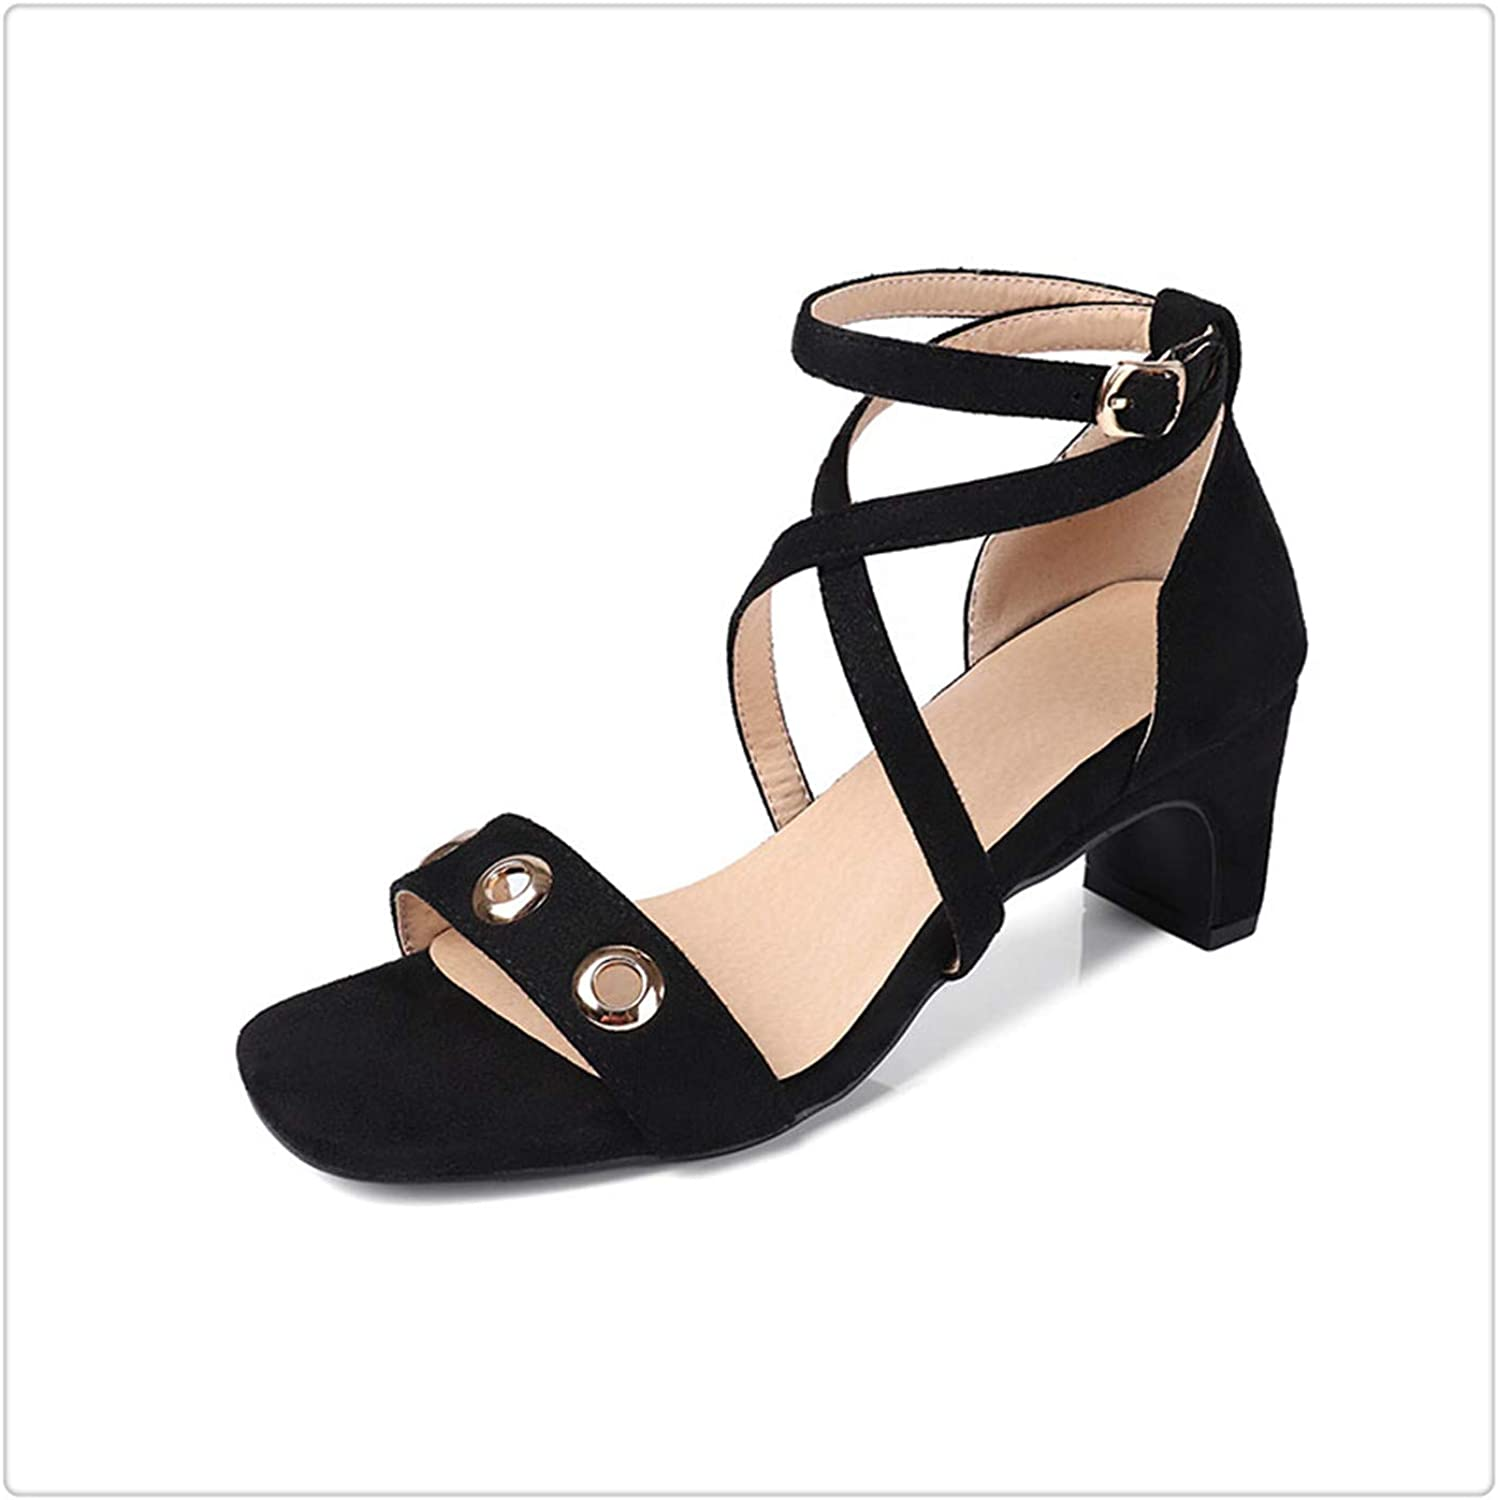 ZXCVB& 2018 New Summer Sandals Women shoes Open Toe High Heels Thick Heel Ladies Footwear Metal Decoration Cross Strap shoes Black 9.5